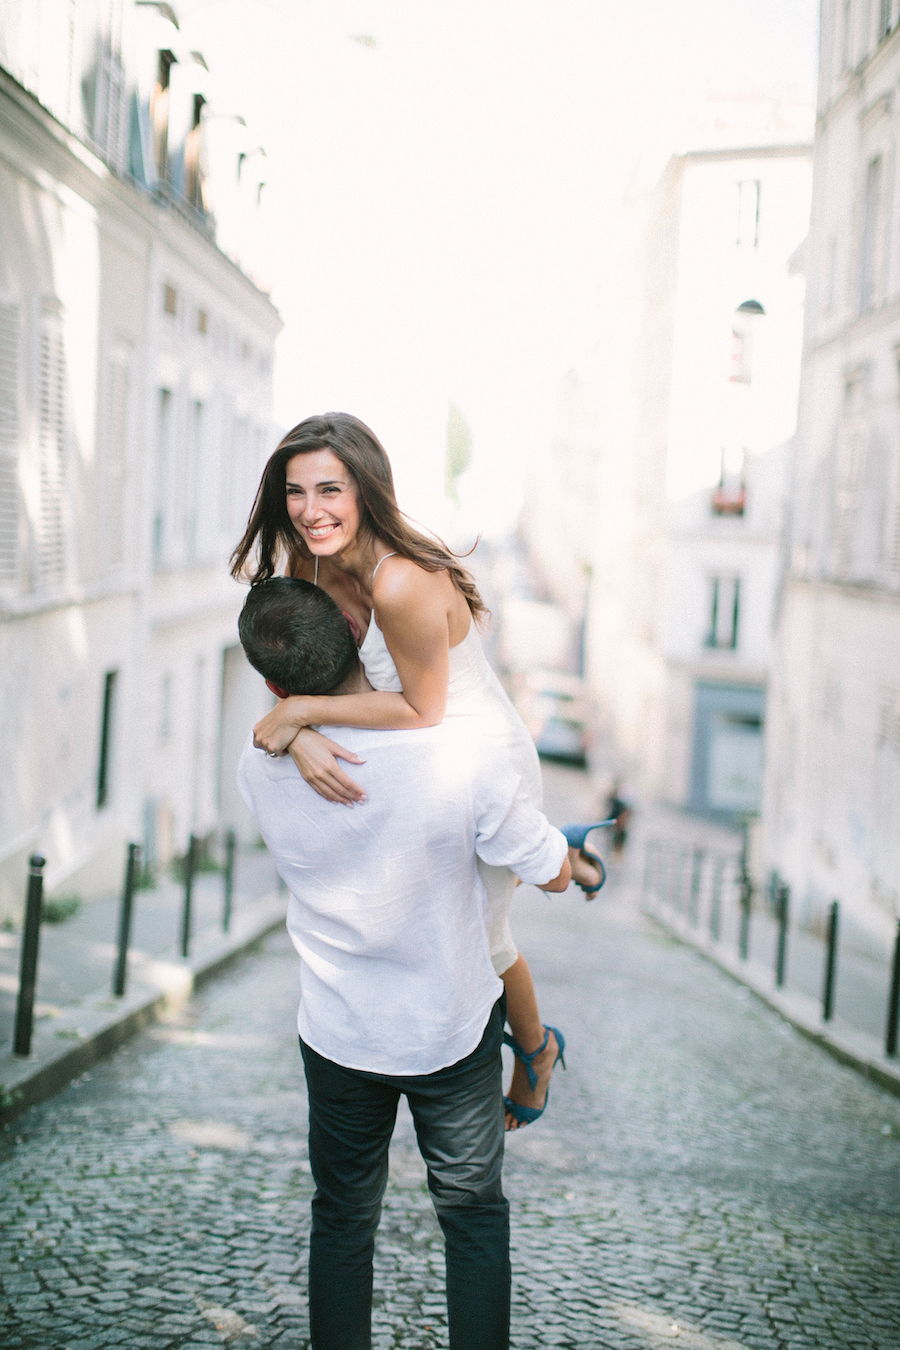 saya-photography-pre-wedding-couple-engagement-photographer-paris-montmartre-11.jpg